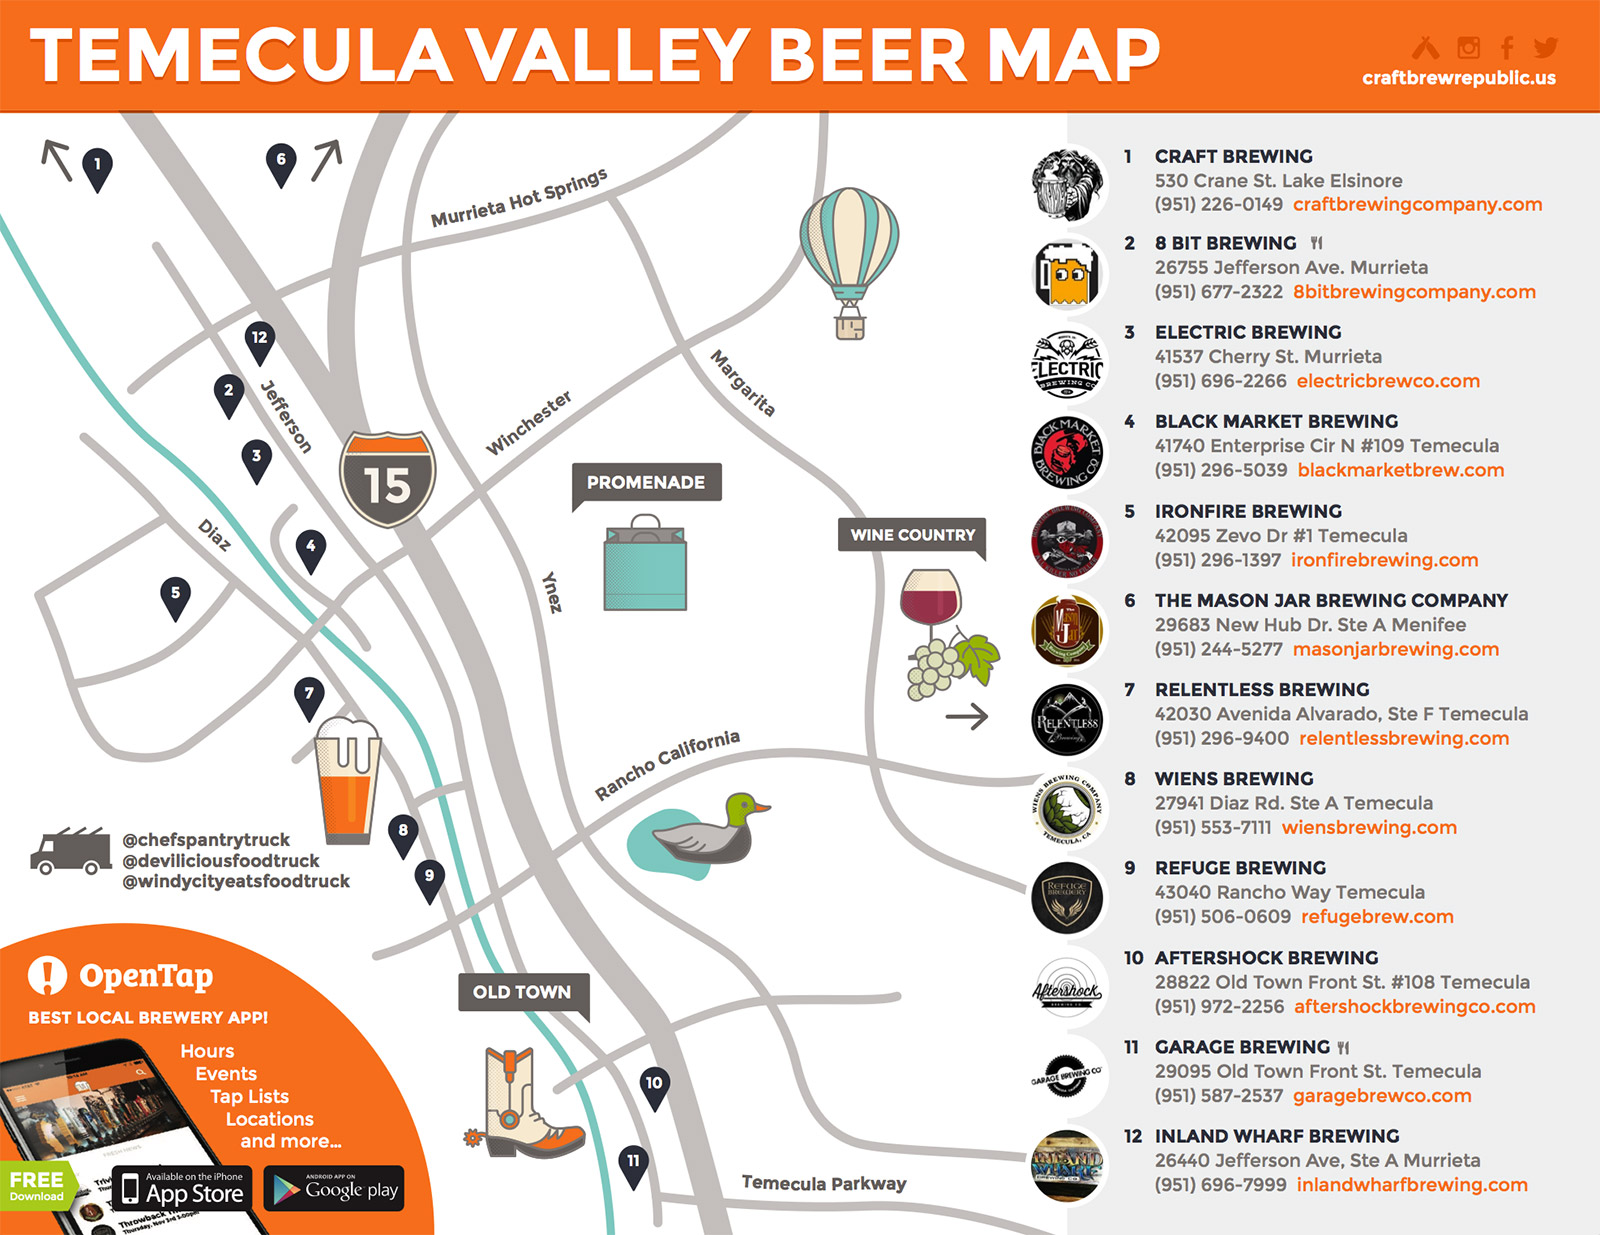 Temecula Brewery Map on Craft Brew Republic Support Your Temecula